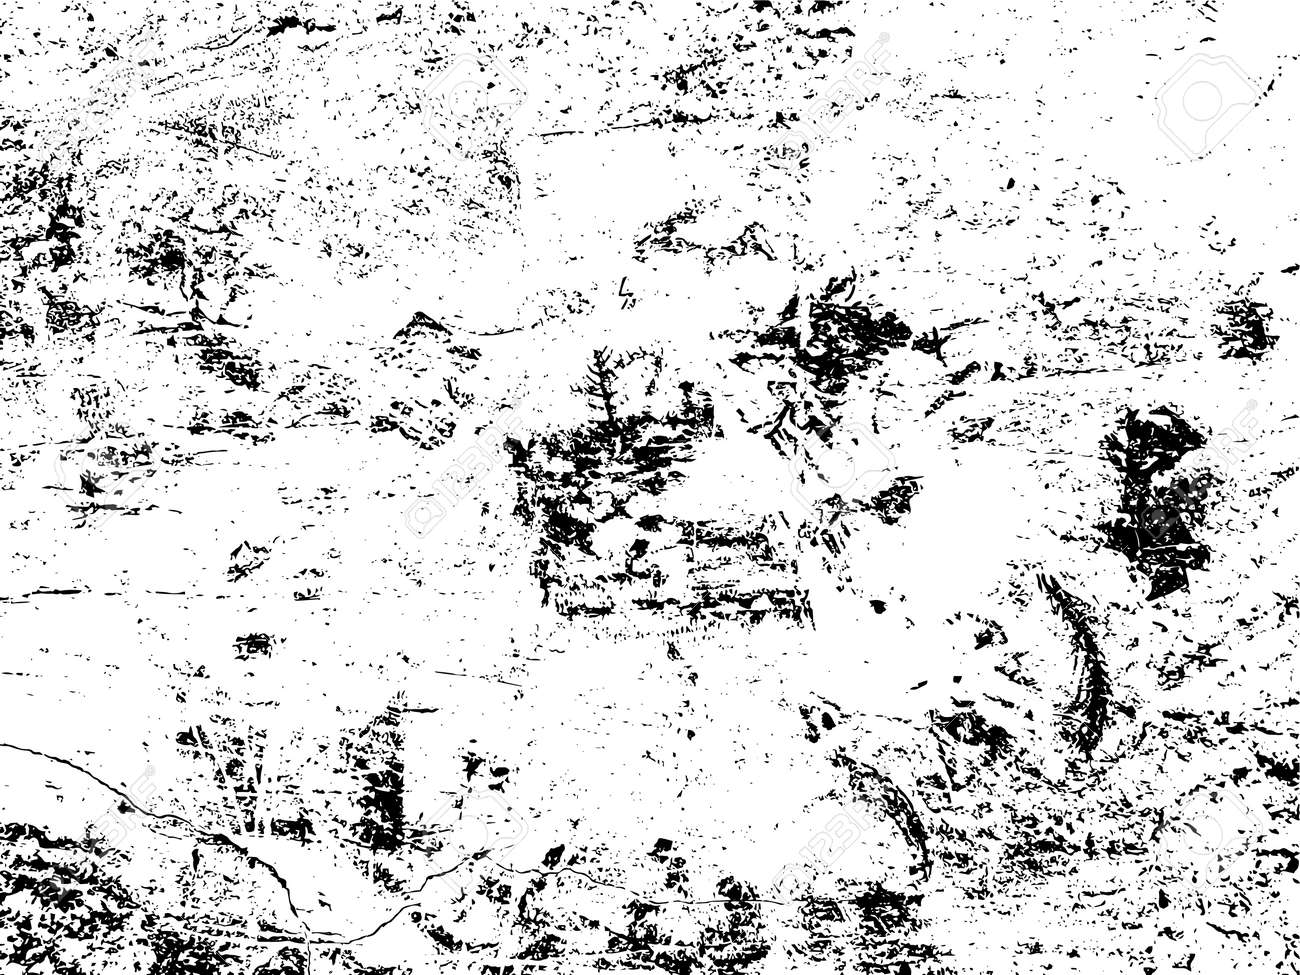 Concrete texture. Cement overlay black and white texture. - 167617466